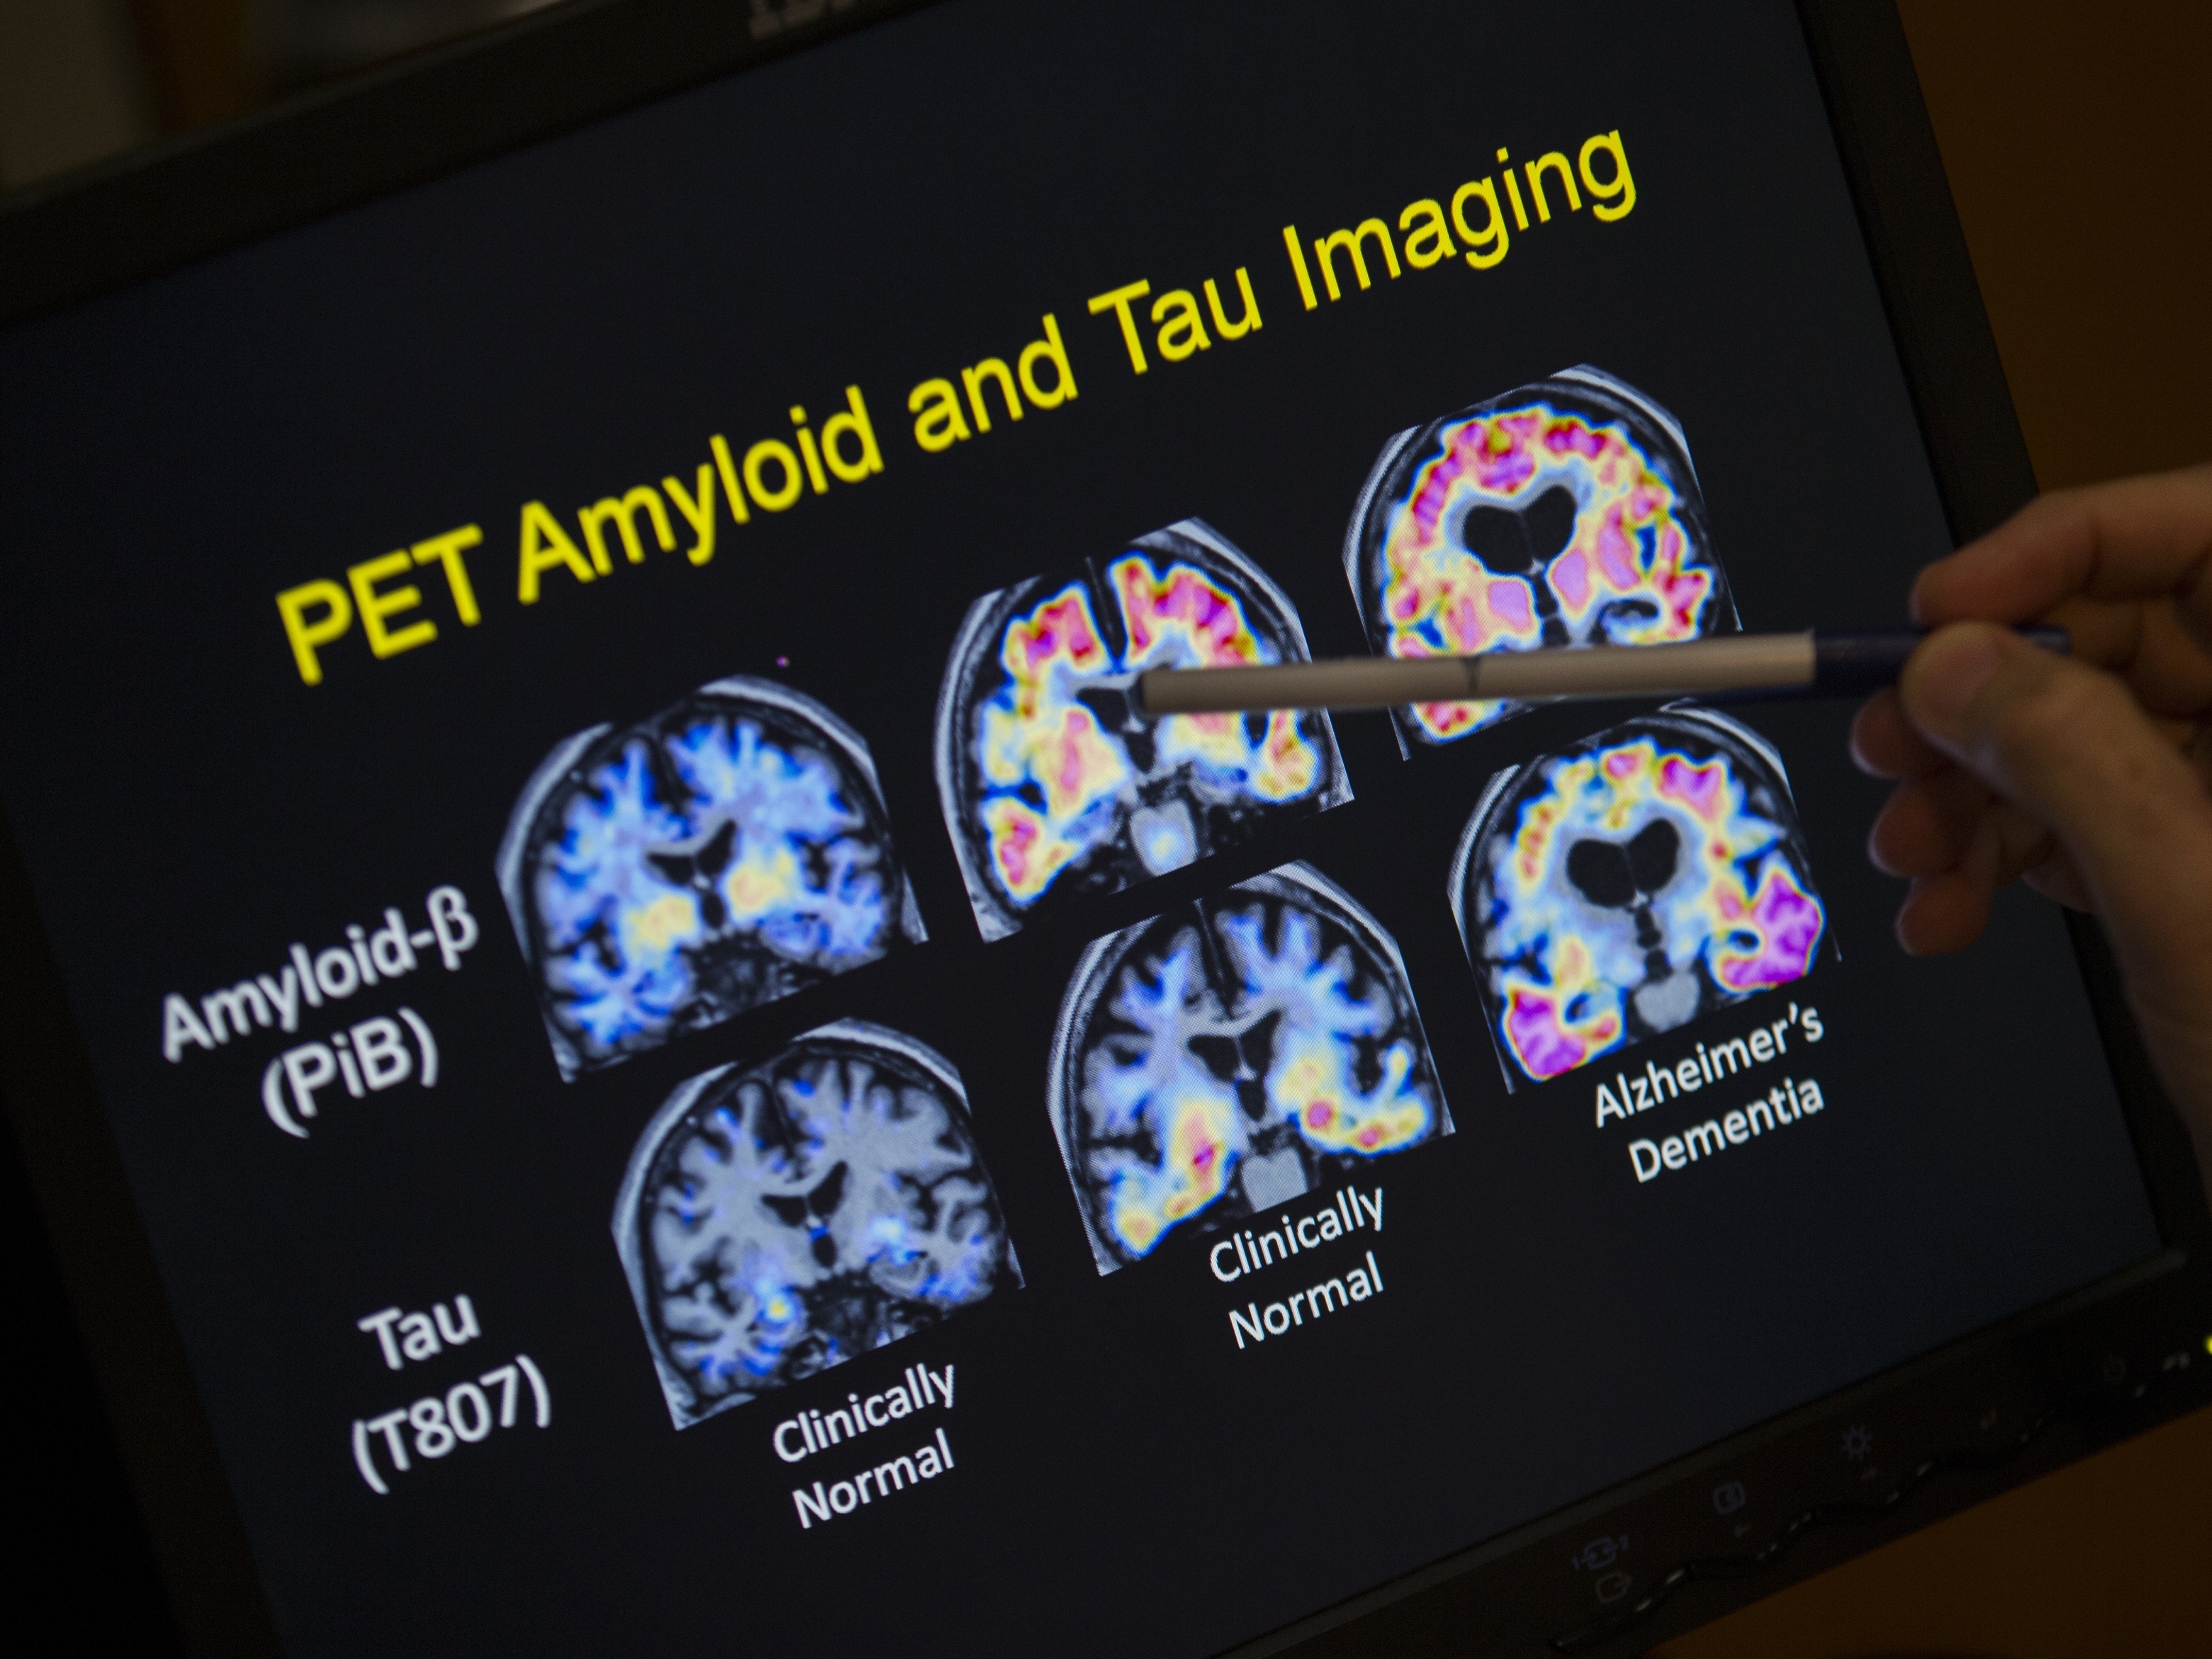 In a May 19, 2015 file photo, R. Scott Turner, Professor of Neurology and Director of the Memory Disorder Center at Georgetown University Hospital, points to PET scan results that are part of a study on Alzheimer's disease at Georgetown University Hospital, in Washington.